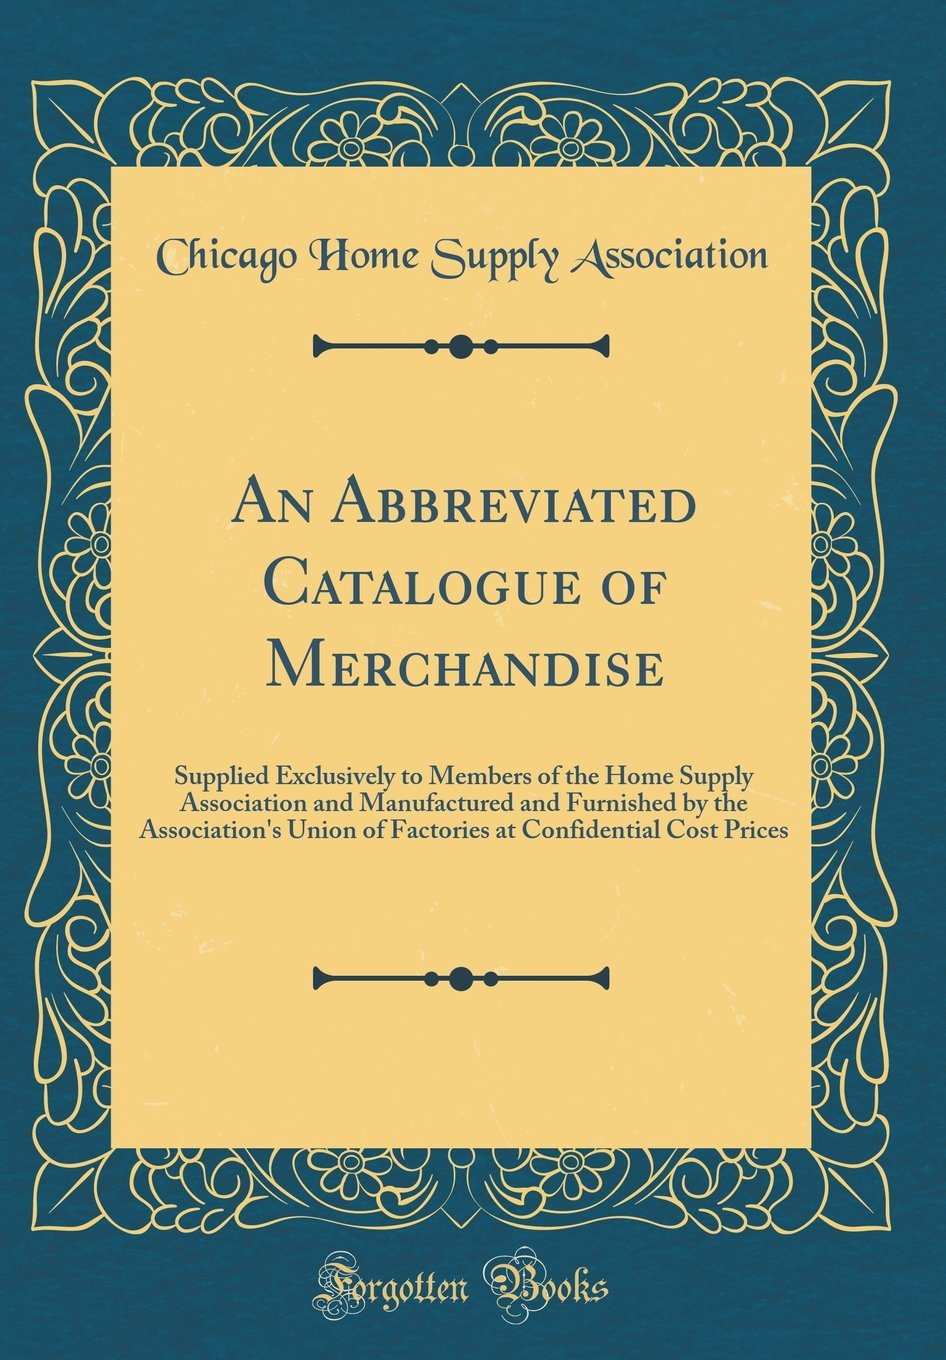 An Abbreviated Catalogue of Merchandise: Supplied